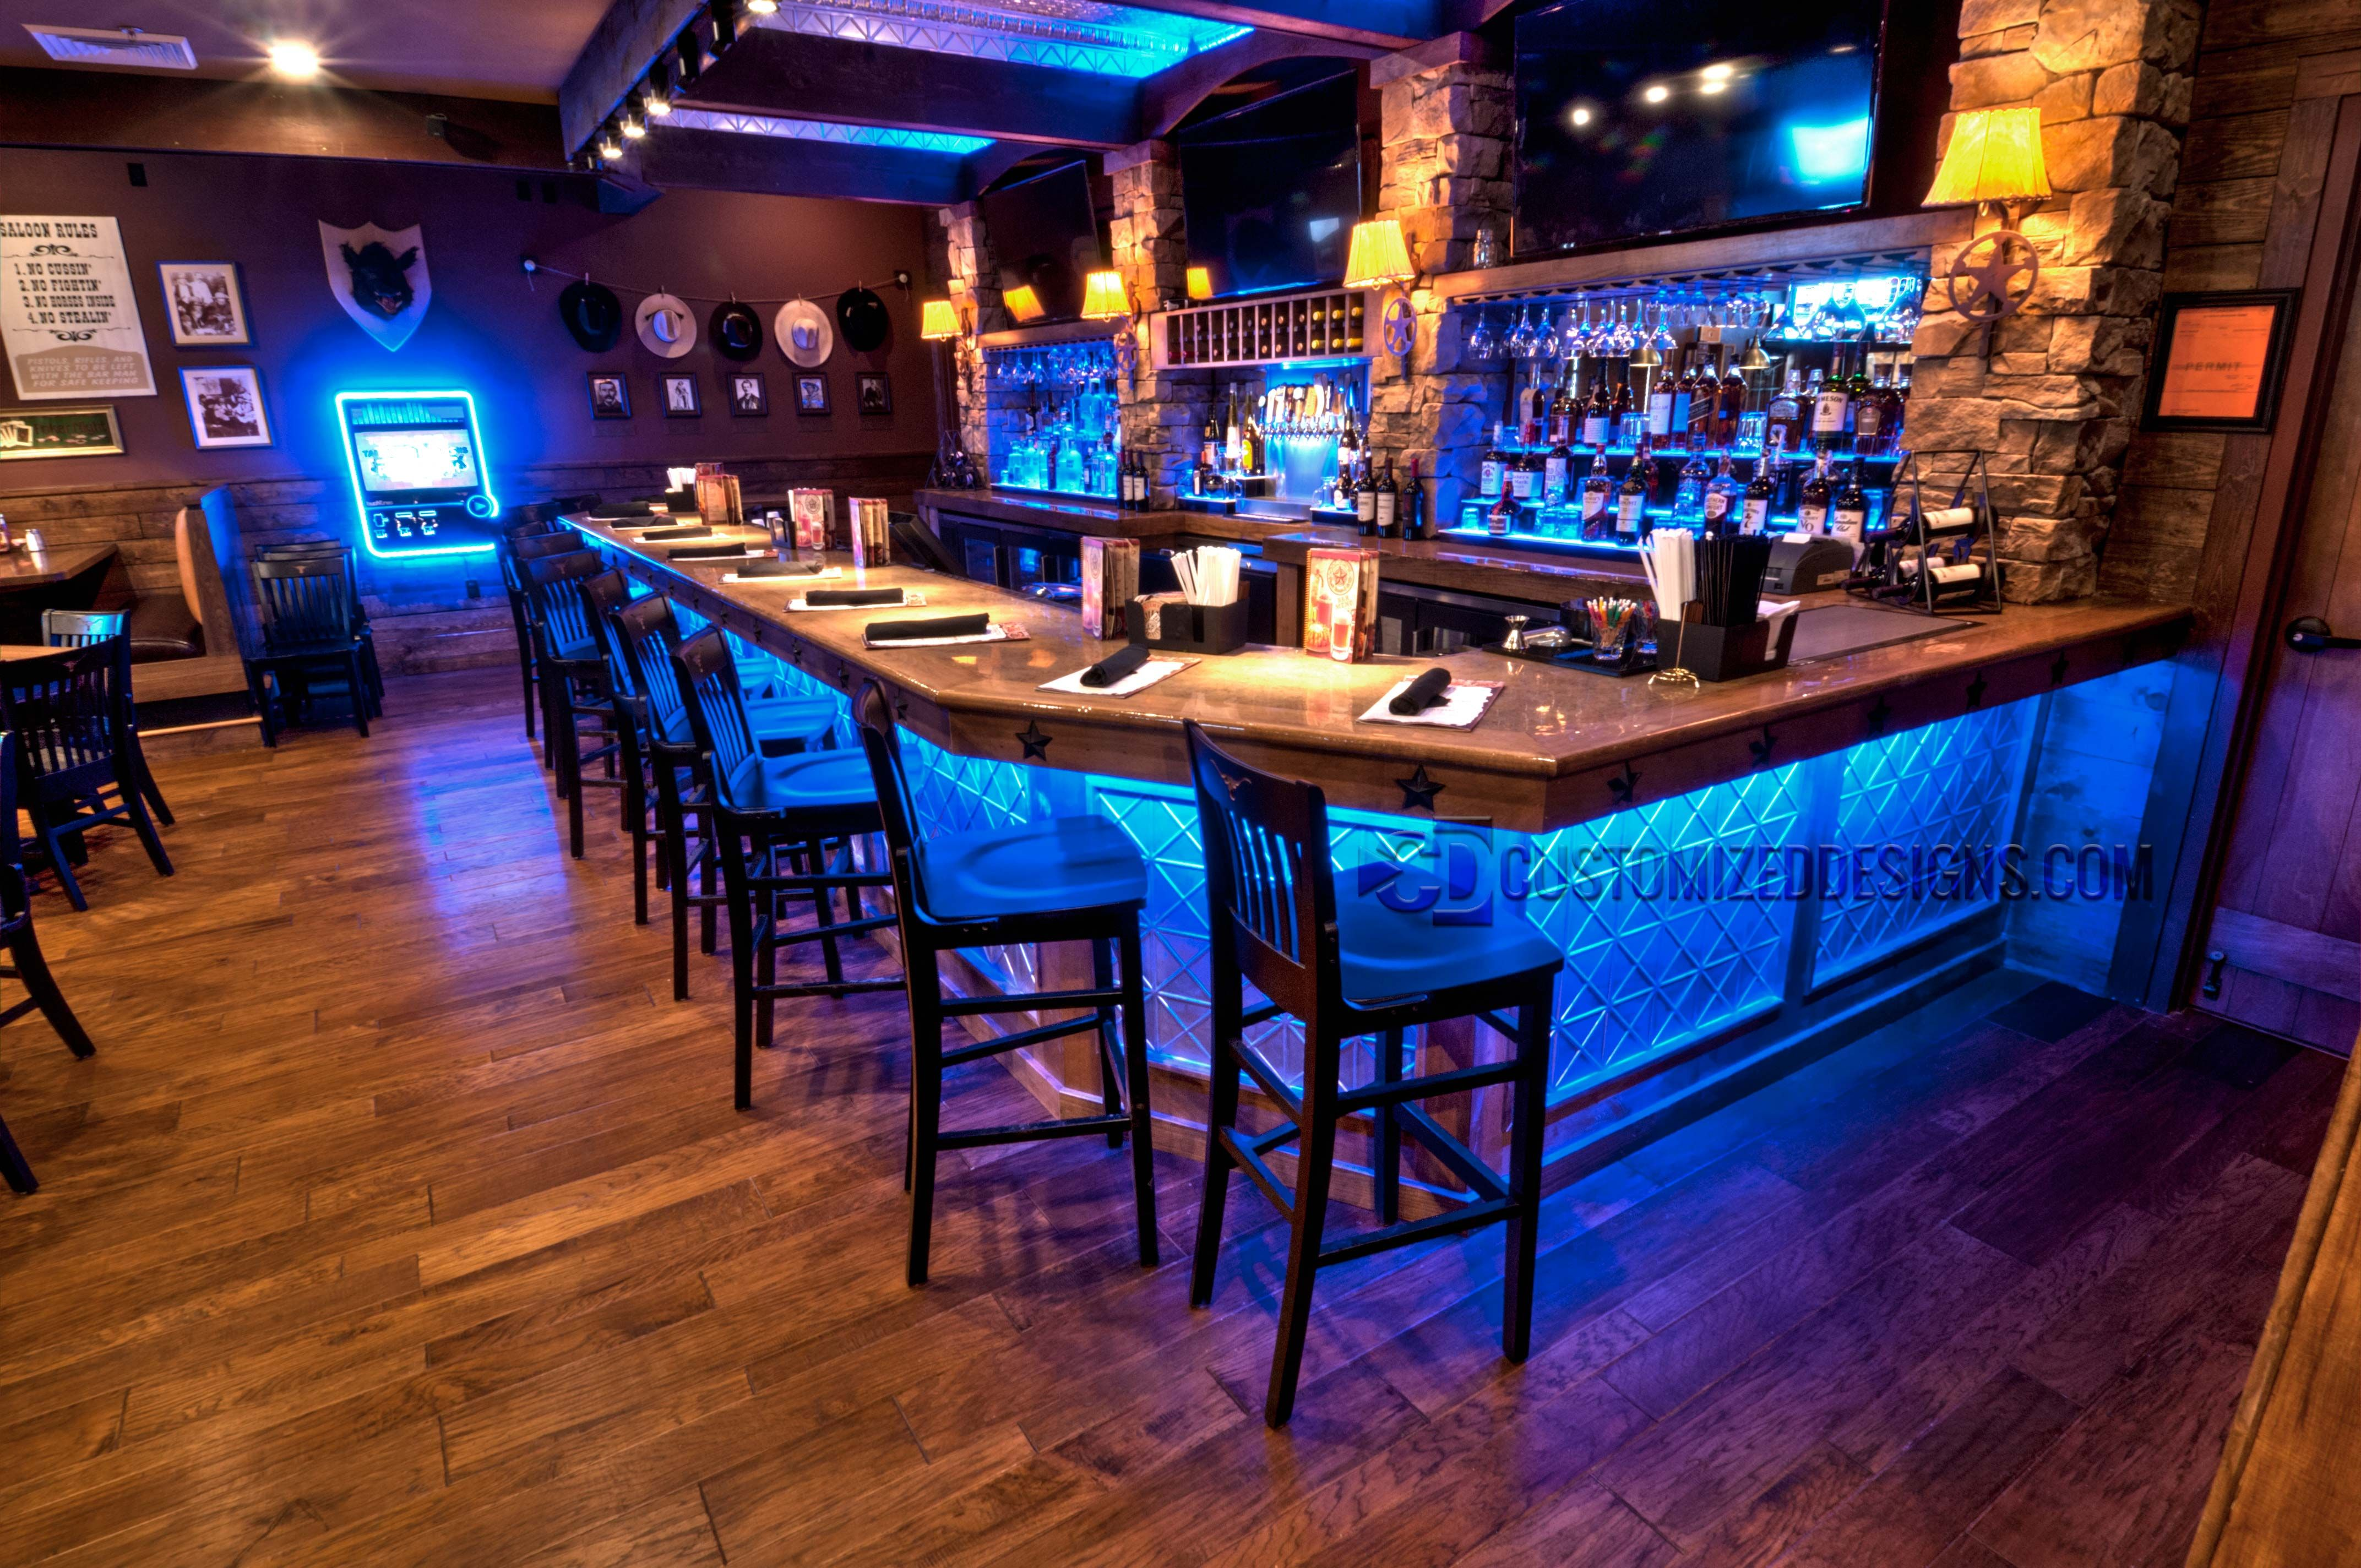 Our Gallery Is Filled With Hundreds Of Pictures Of Liquor Displays, Bar  Shelving, Portable Bars And An Array Of Custom LED Products. Check It Out!